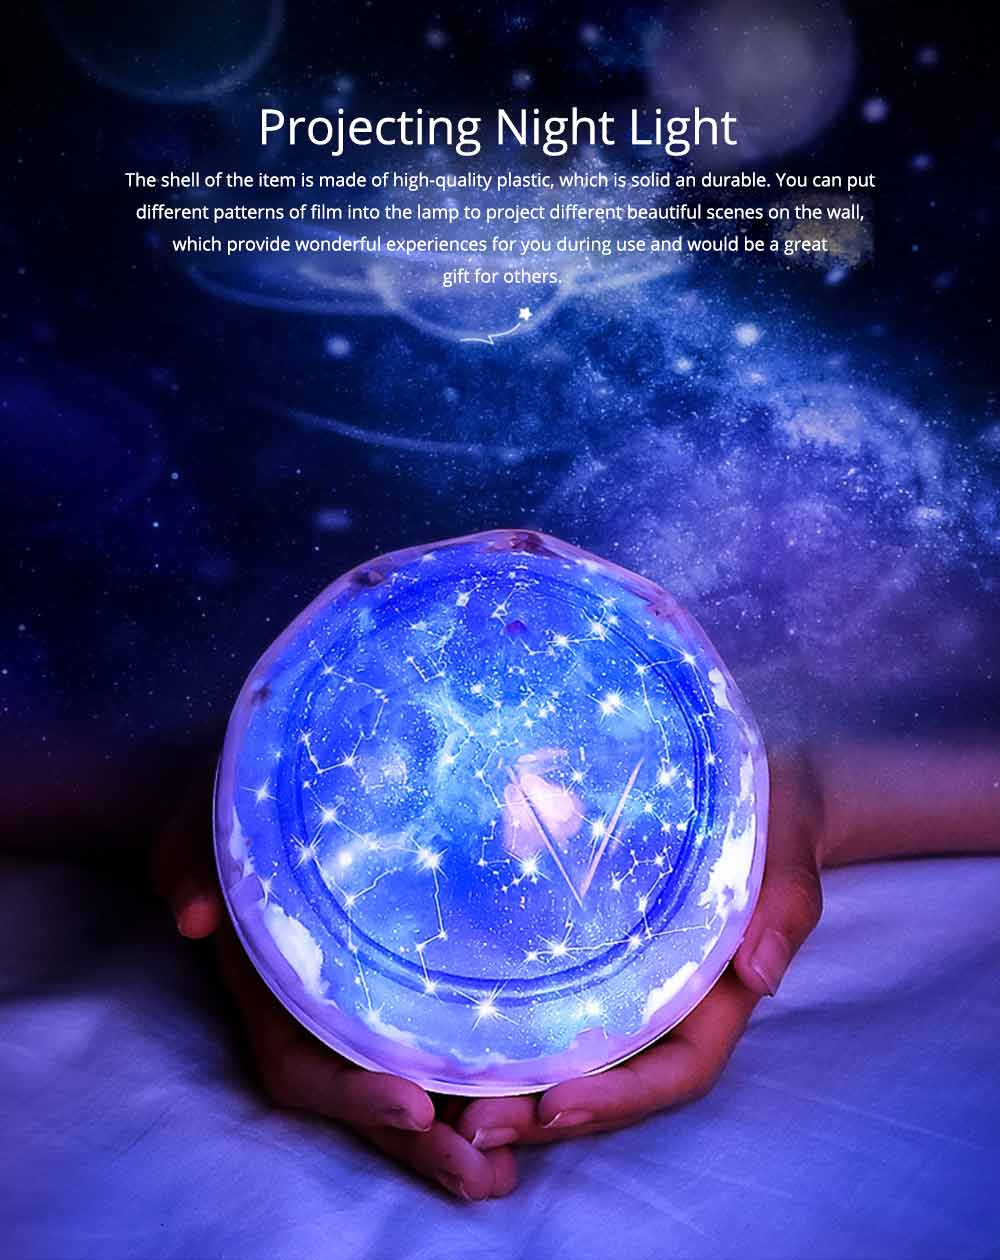 Pretty Starry Sky Ocean Projecting Night Light, Rotation Light Birthday New Year Gift 0